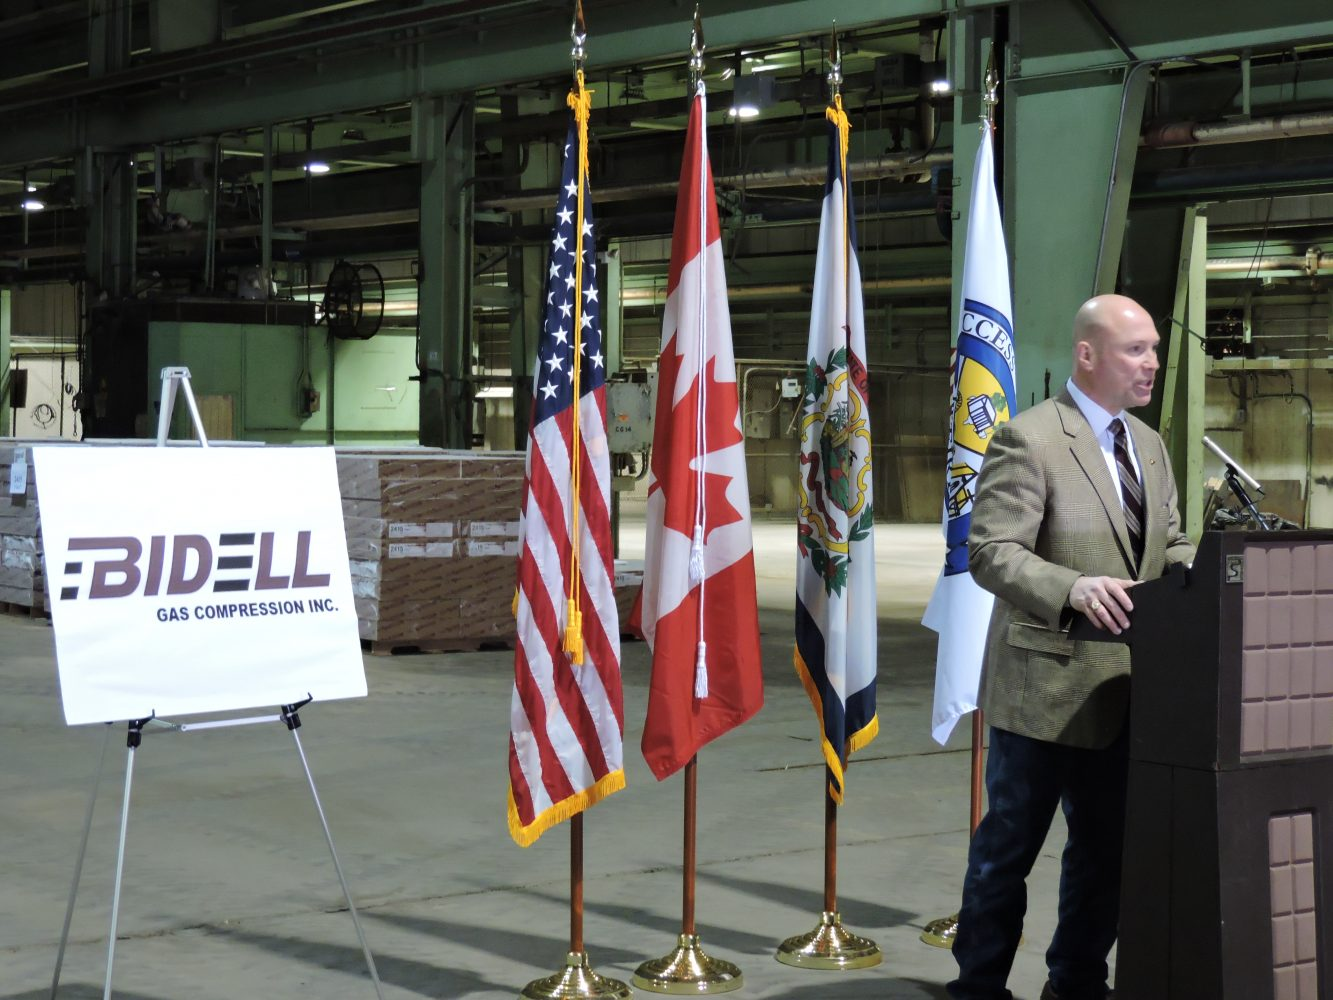 Canadian firm coming to Weirton | News, Sports, Jobs - The Herald Star